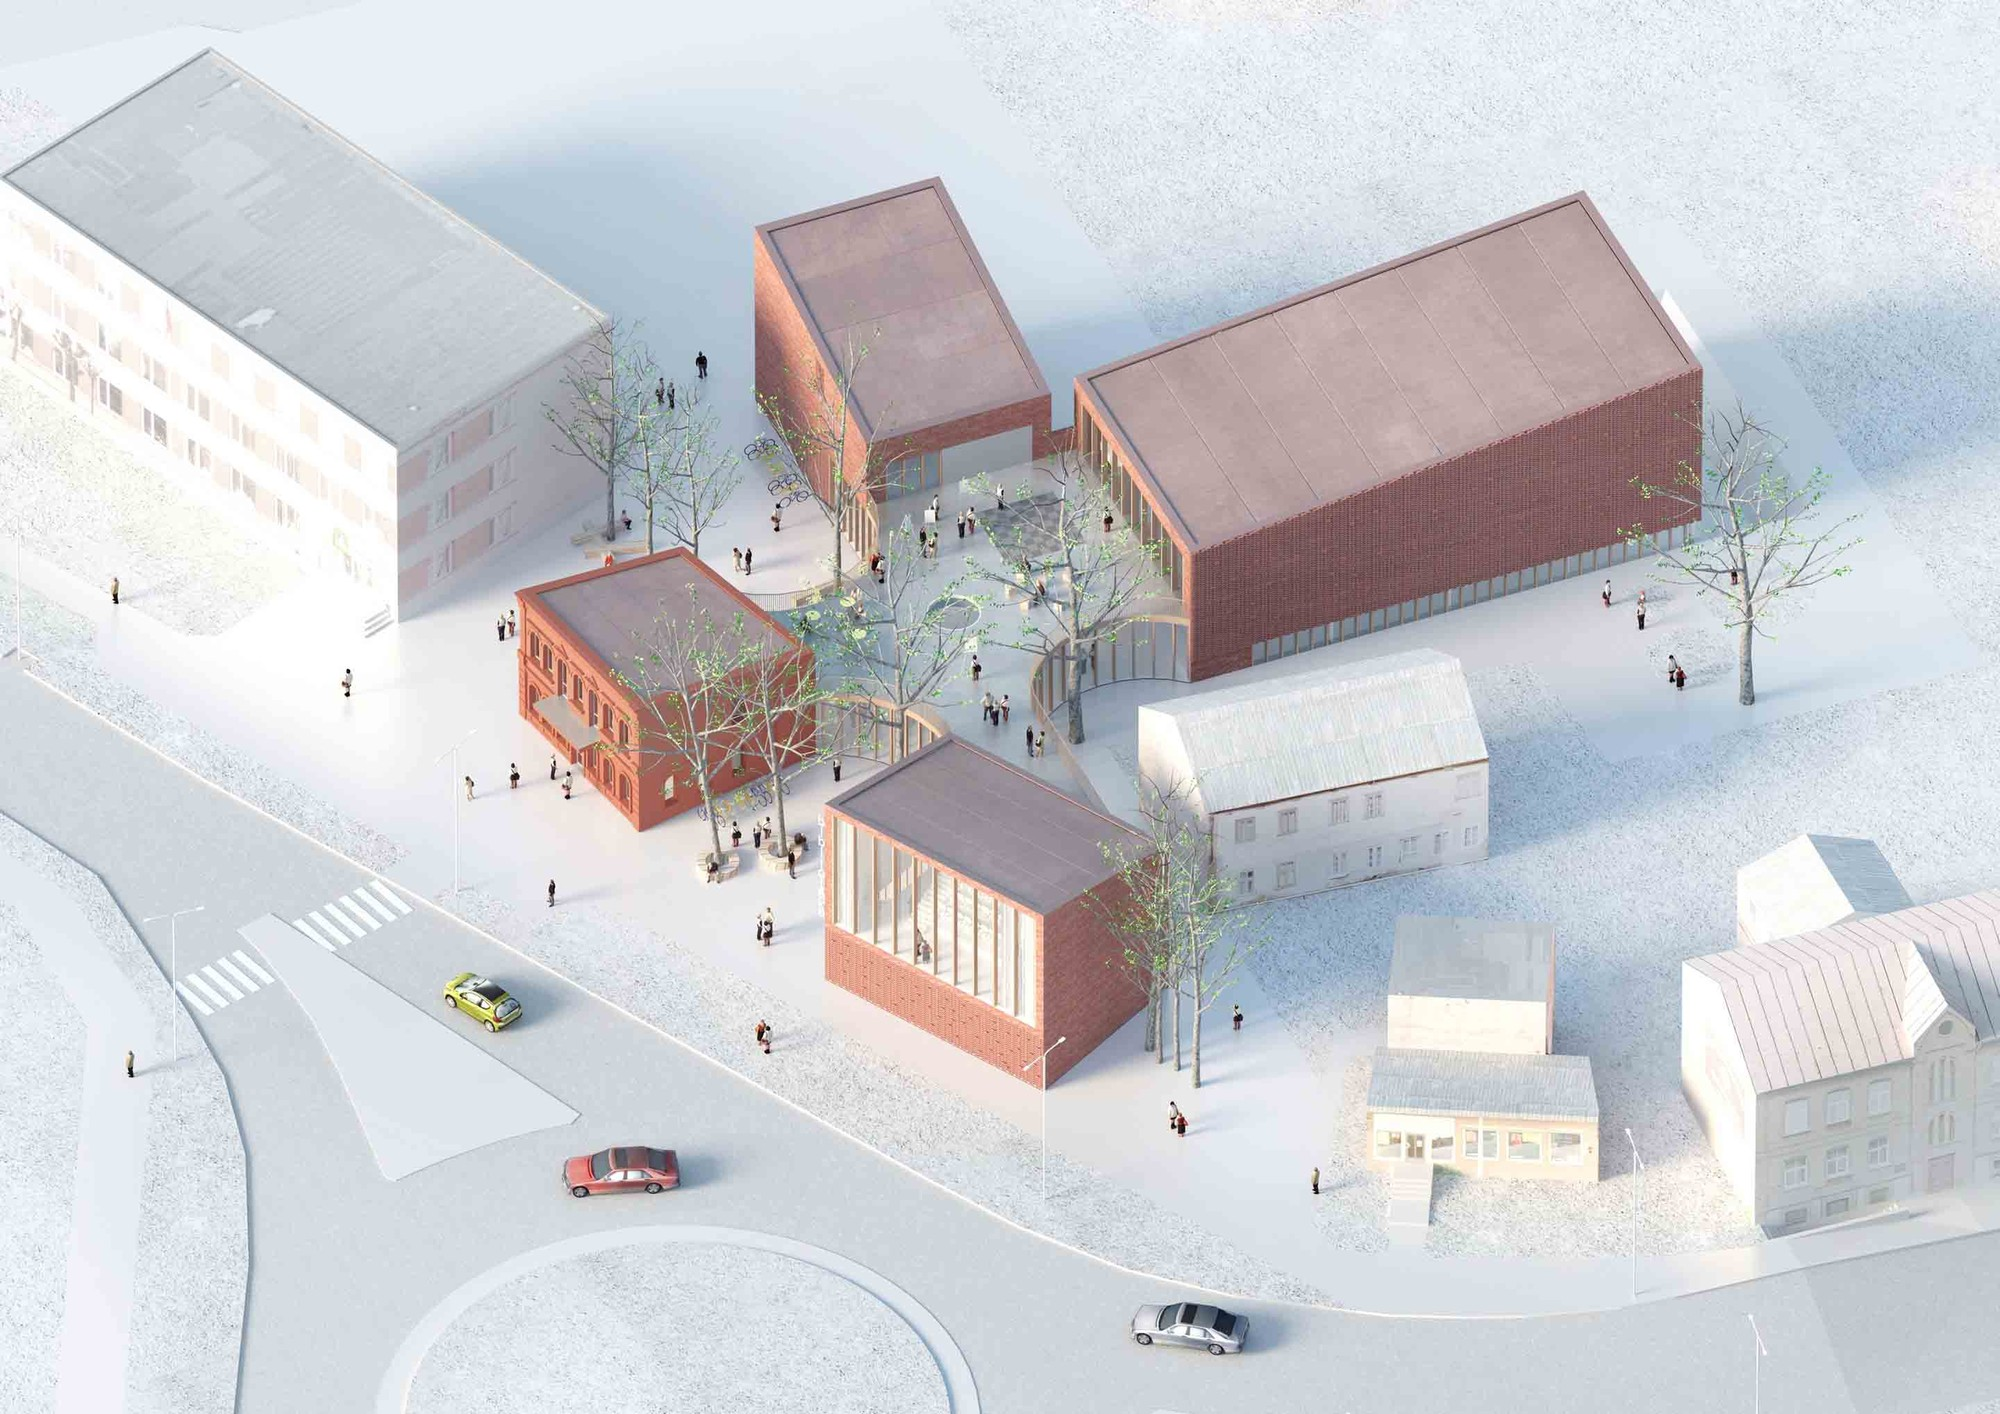 Library building in bauska winning proposal a2sm - Architecture of a building ...